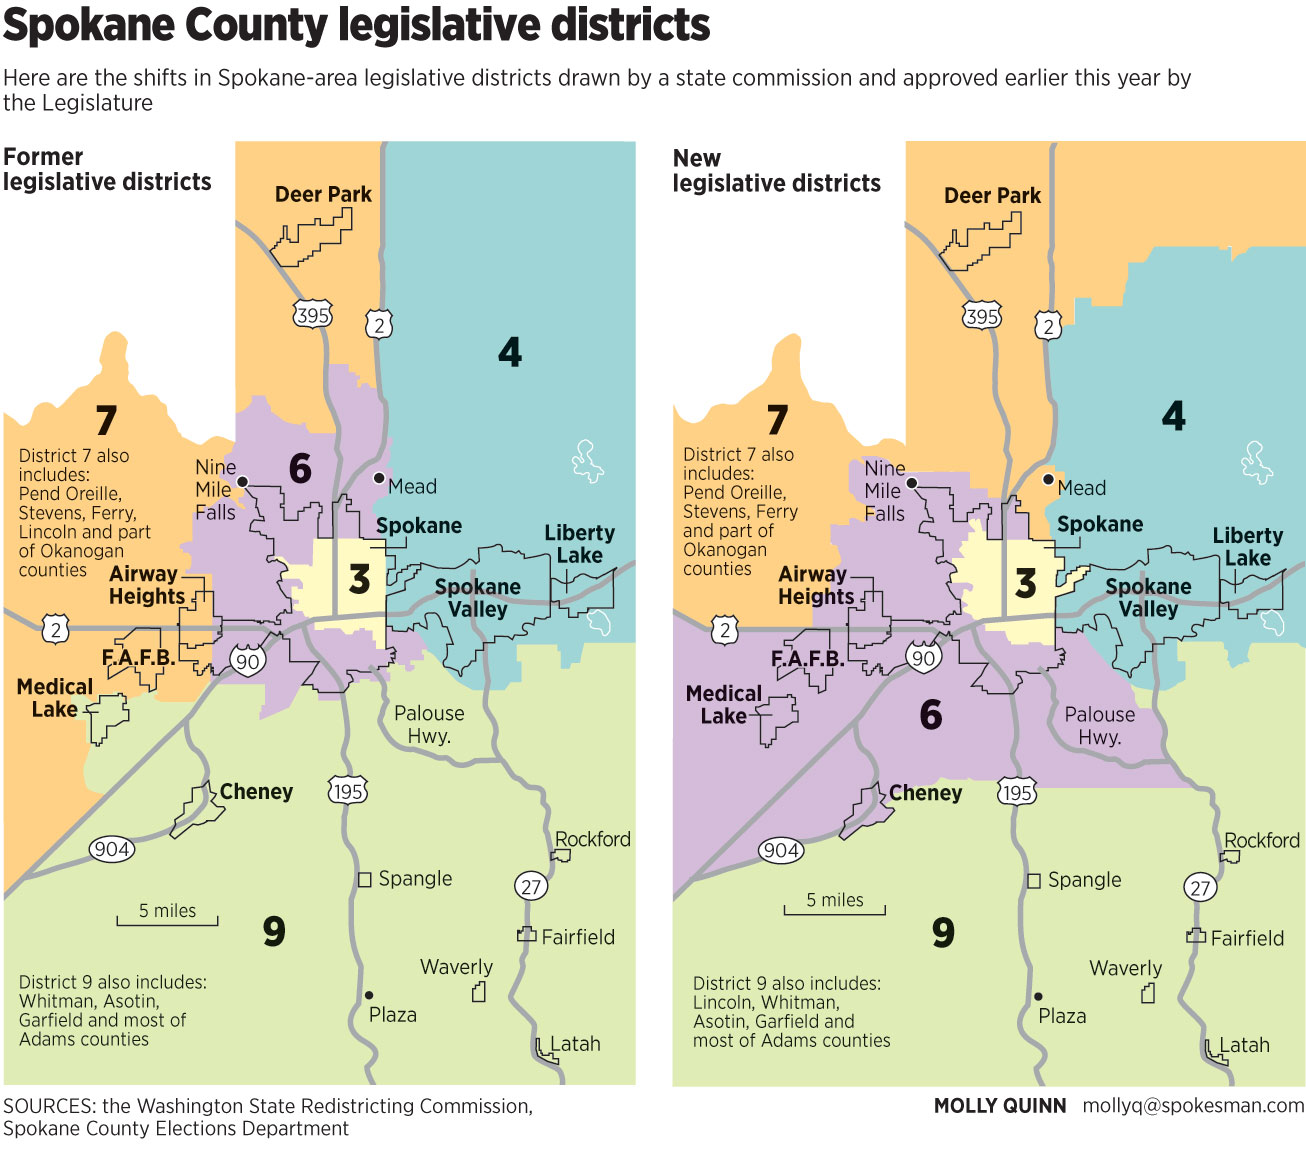 Shifts In Spokane Area Legislative Districts Drawn By A State Commission And Approved Earlier This